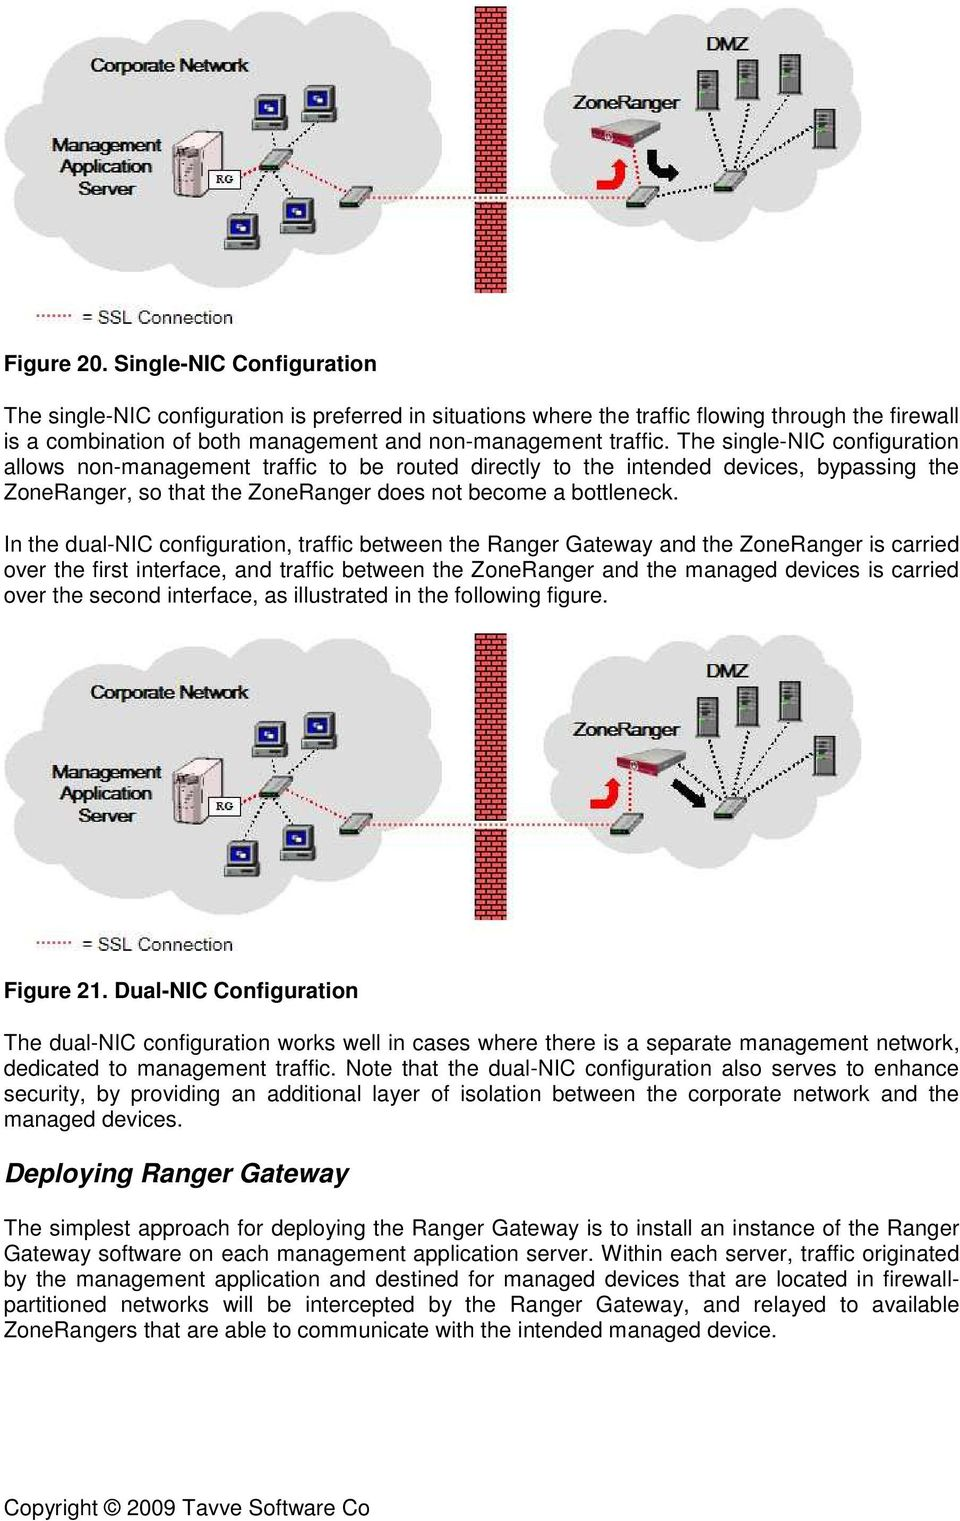 The single-nic configuration allows non-management traffic to be routed directly to the intended devices, bypassing the ZoneRanger, so that the ZoneRanger does not become a bottleneck.